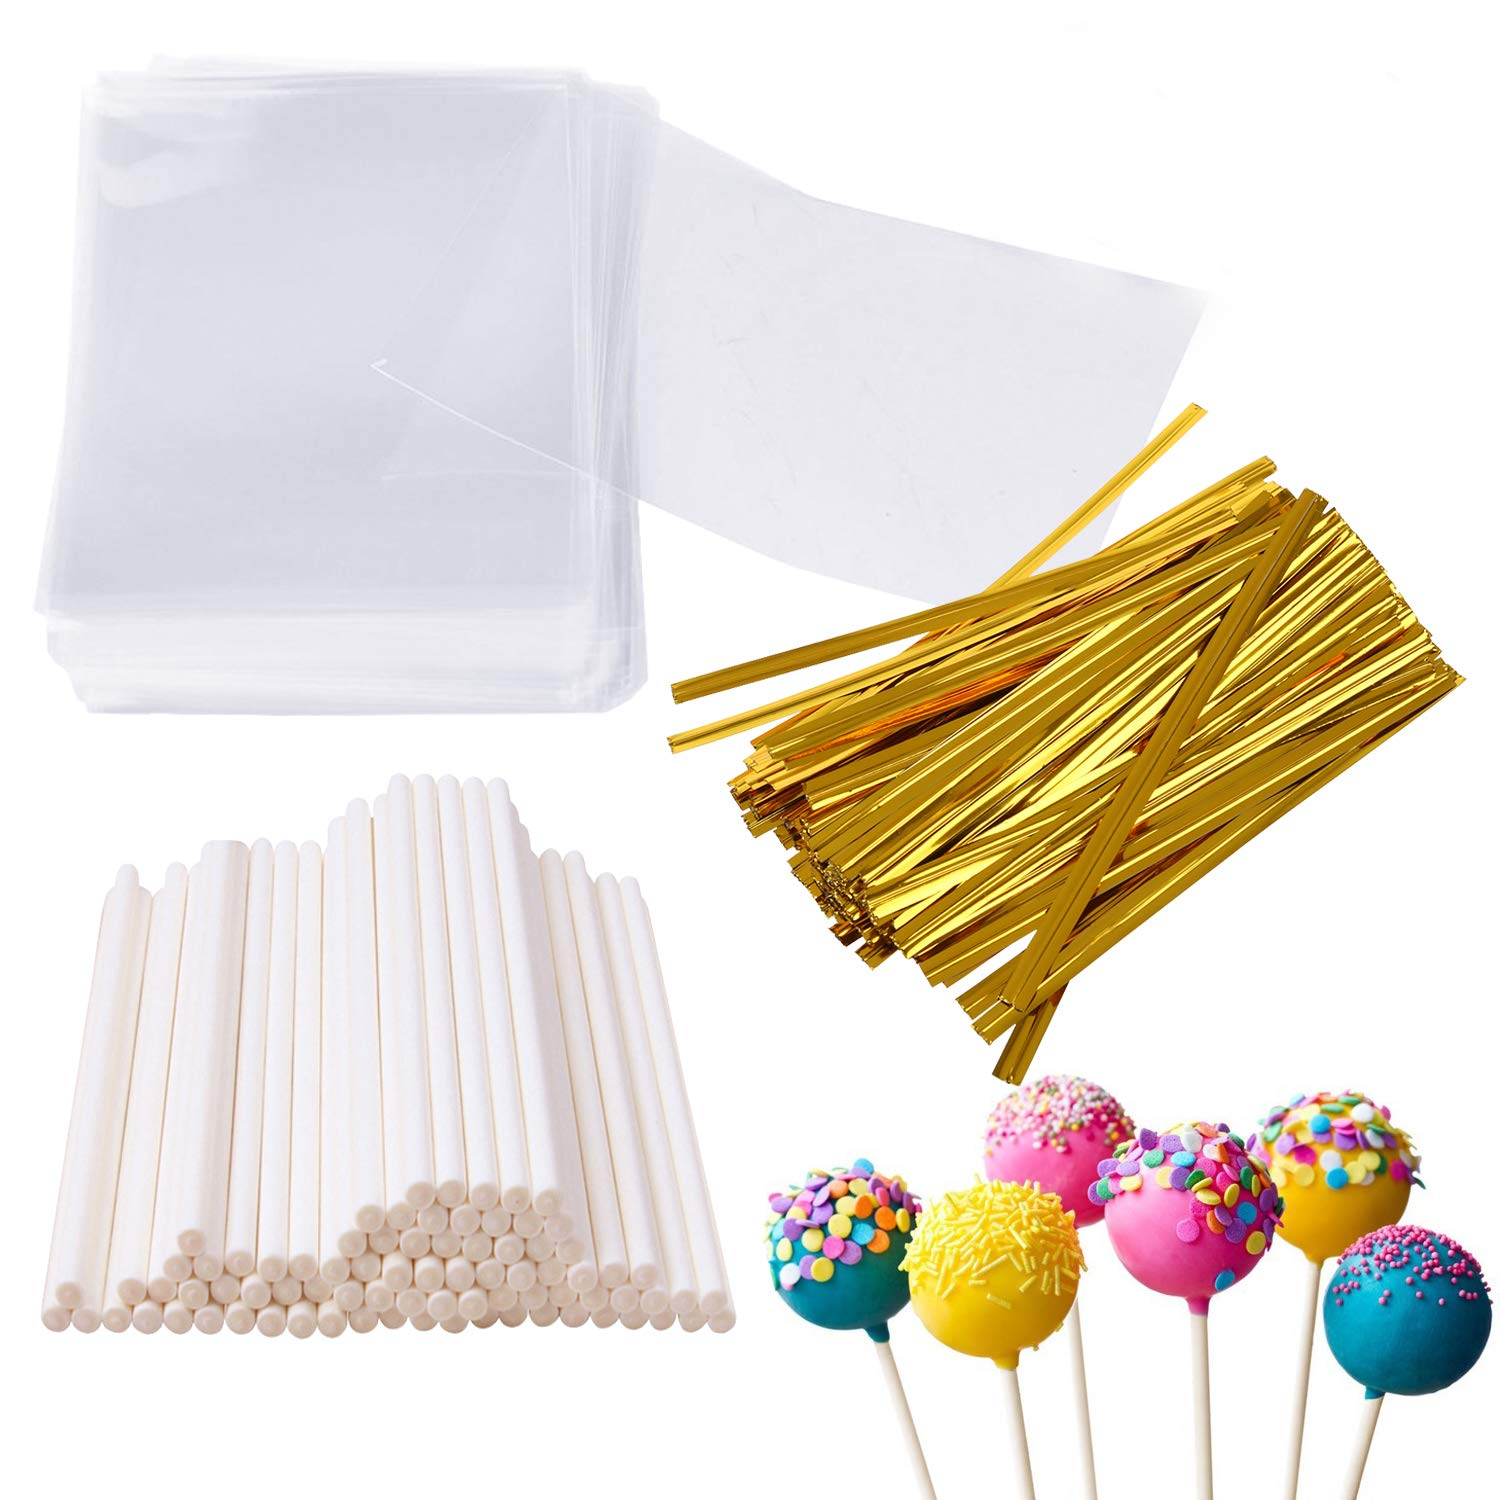 Cake Pops Making Tools,More Larger Than Other Lollipop Sticks and Clear Bags,Pack of 300 by Augshy